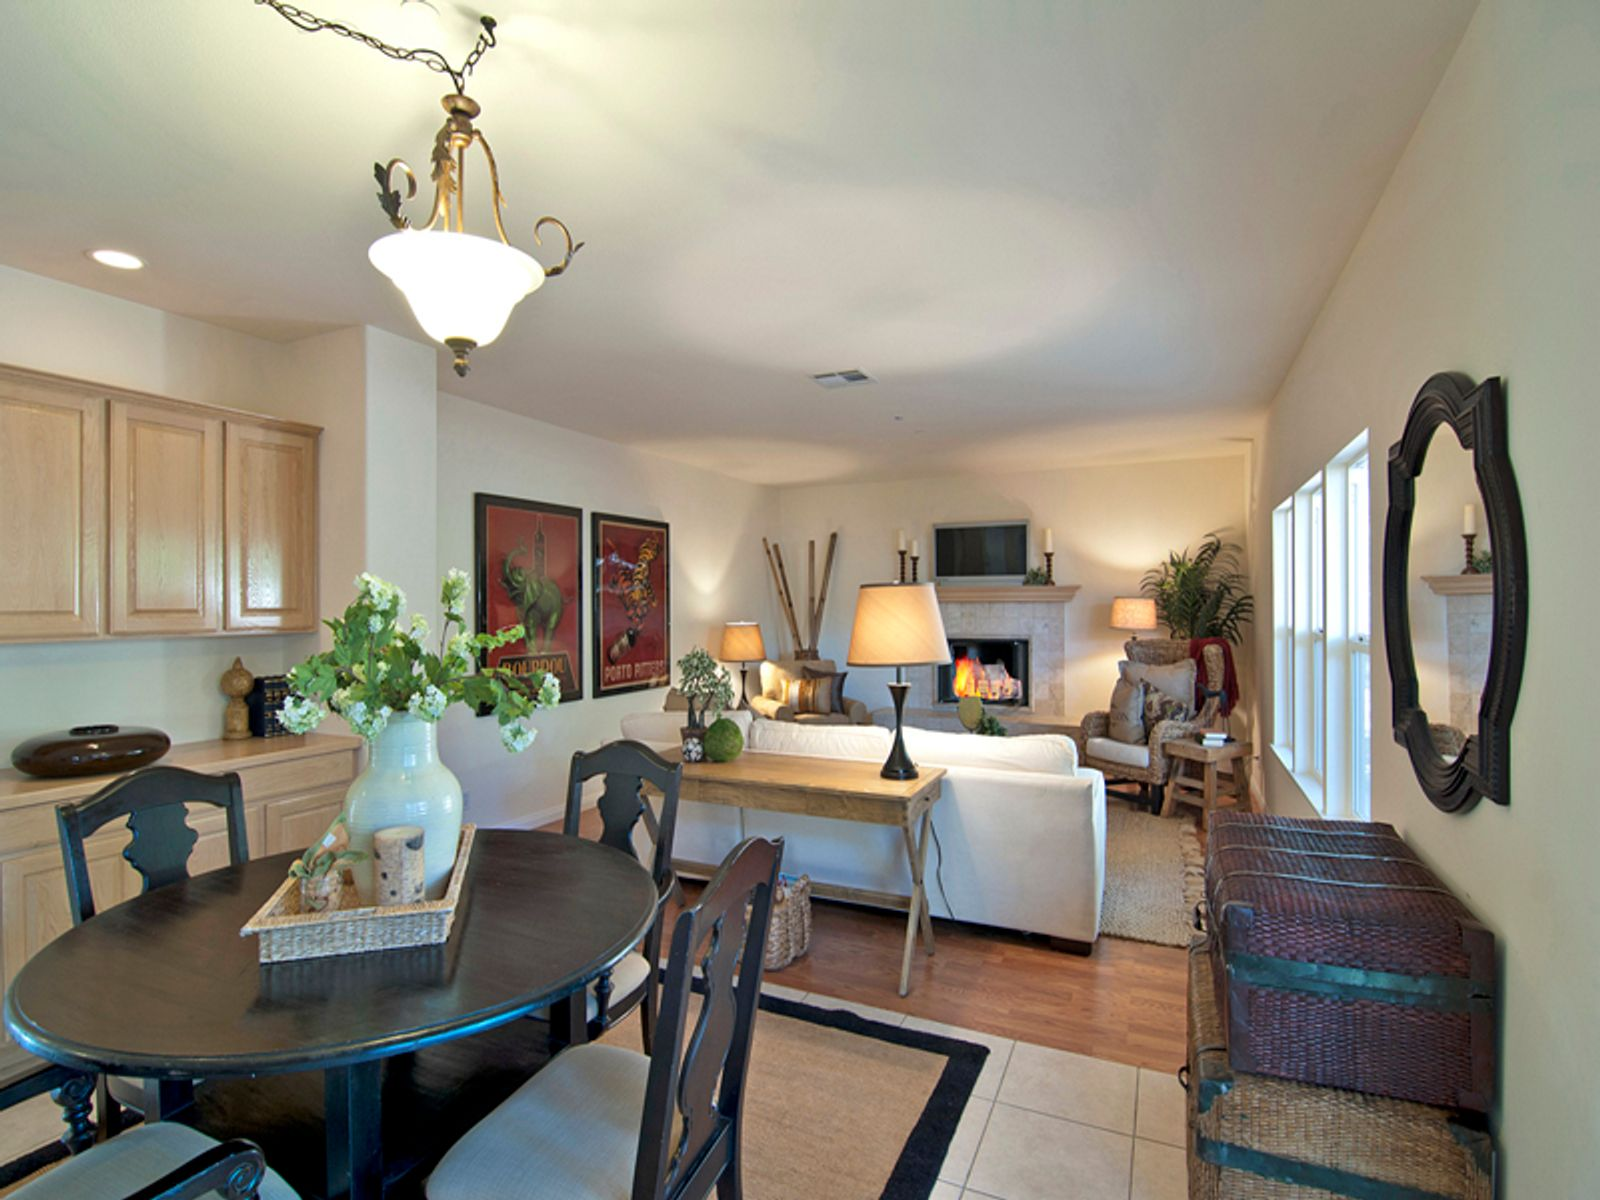 Kitchenette and Family Room